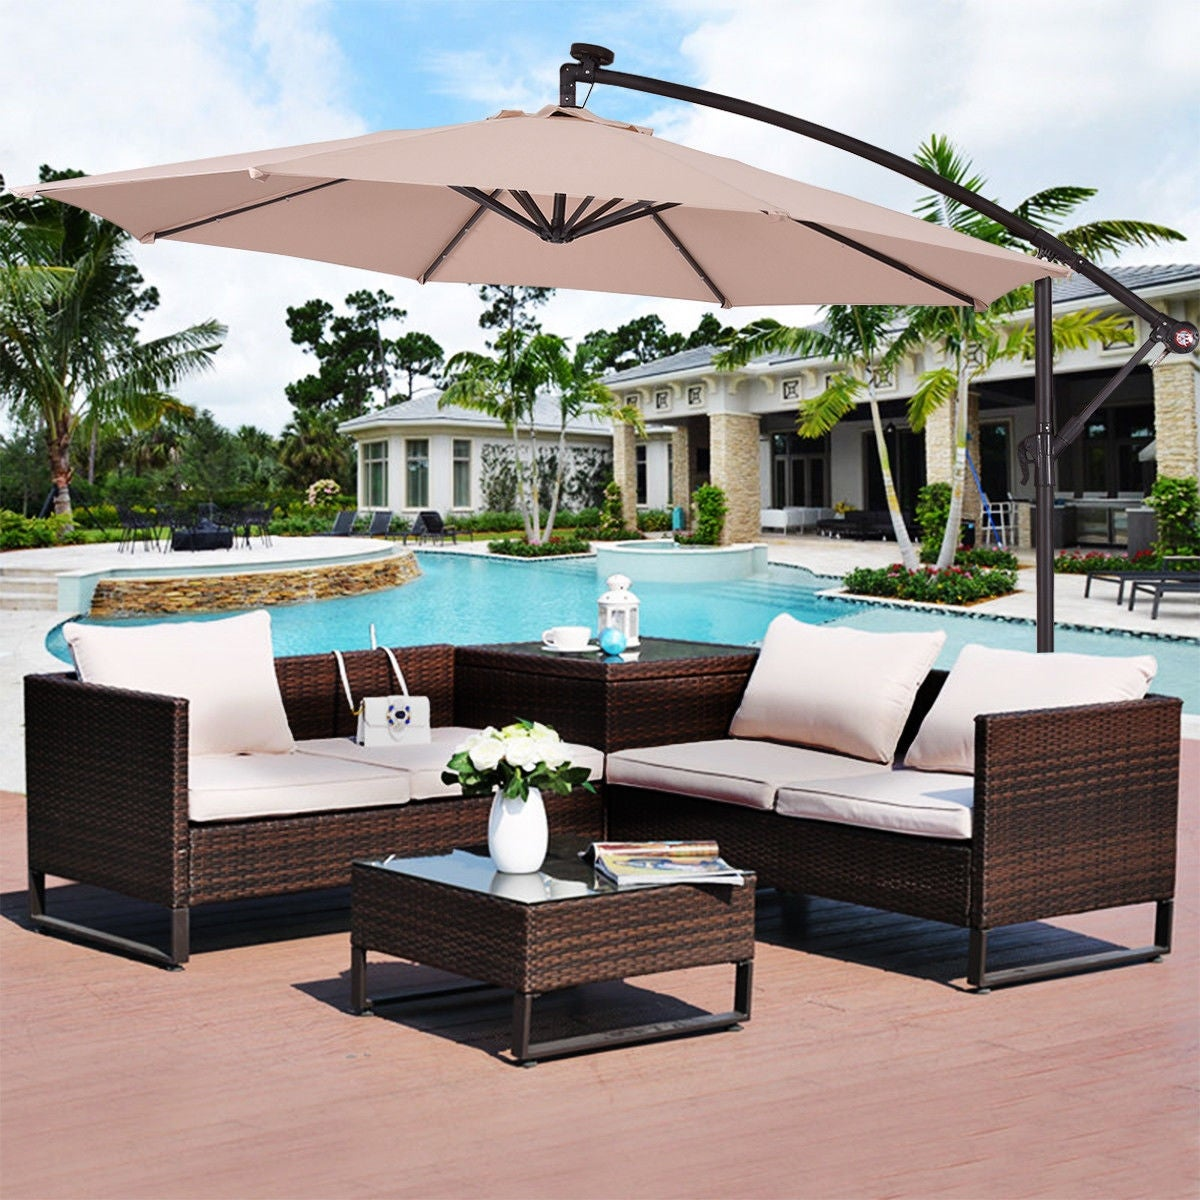 Shop Costway 10 Hanging Solar Led Umbrella Patio Sun Shade Offset